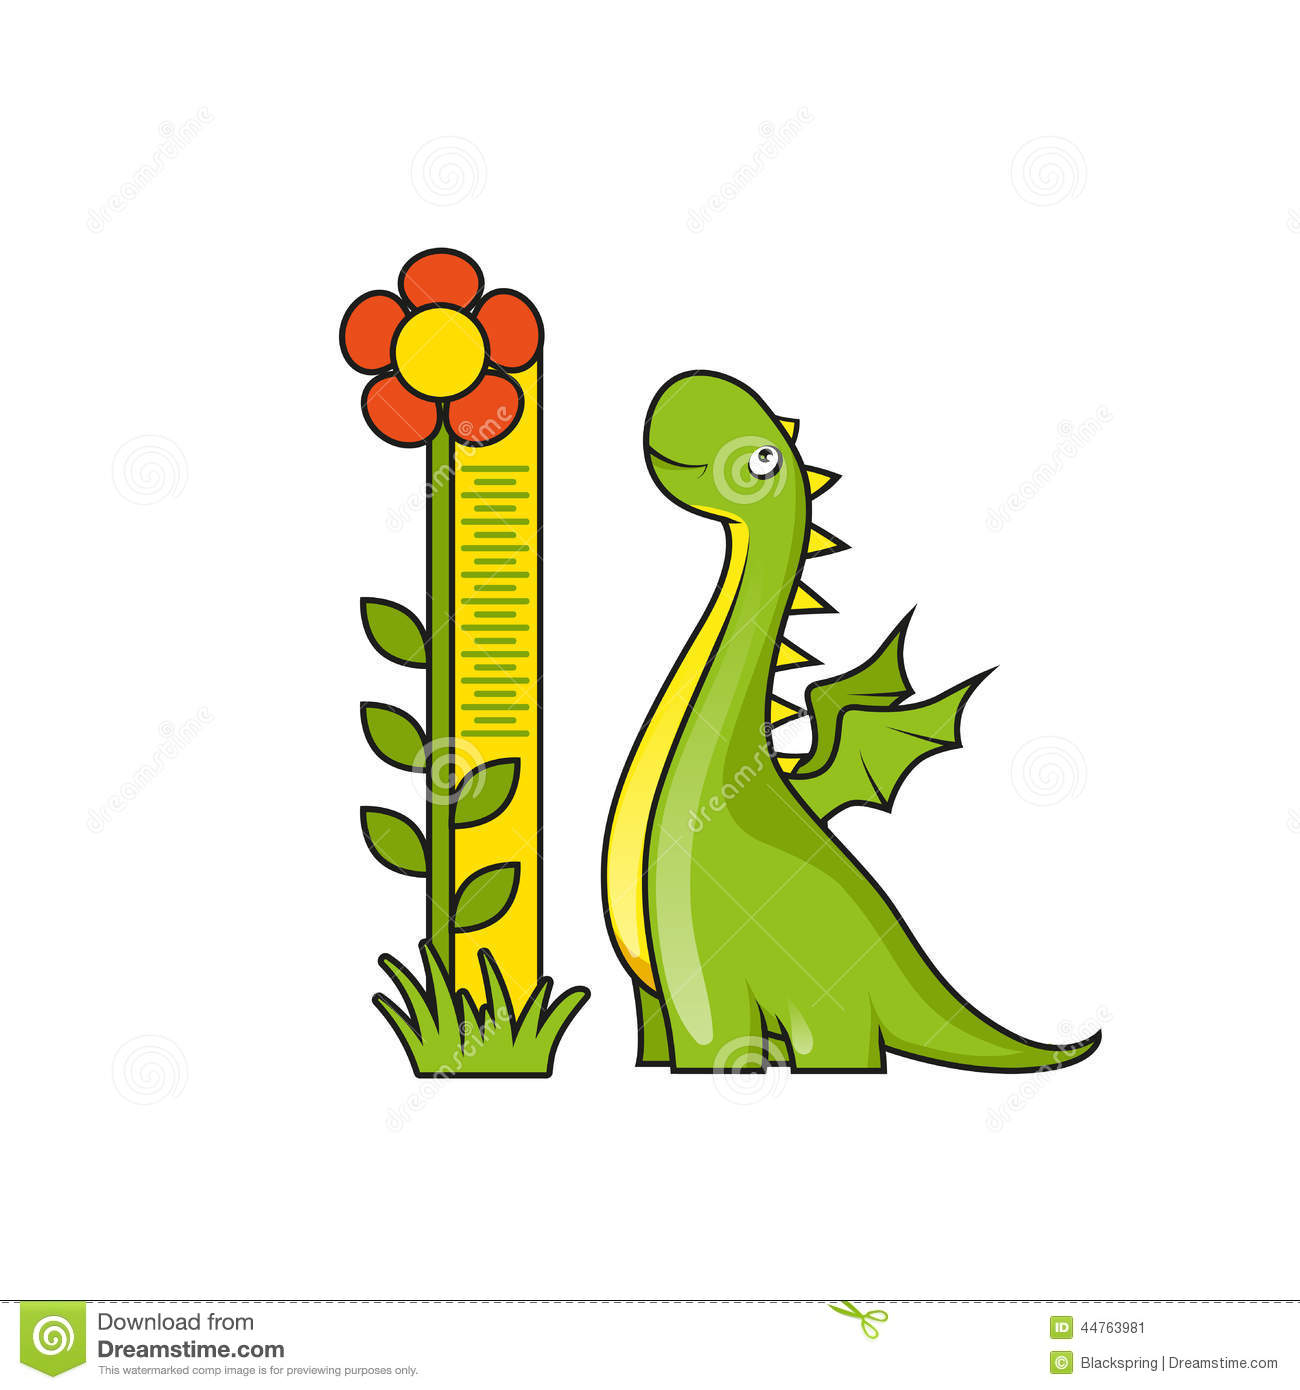 Measuring Scale Clipart.